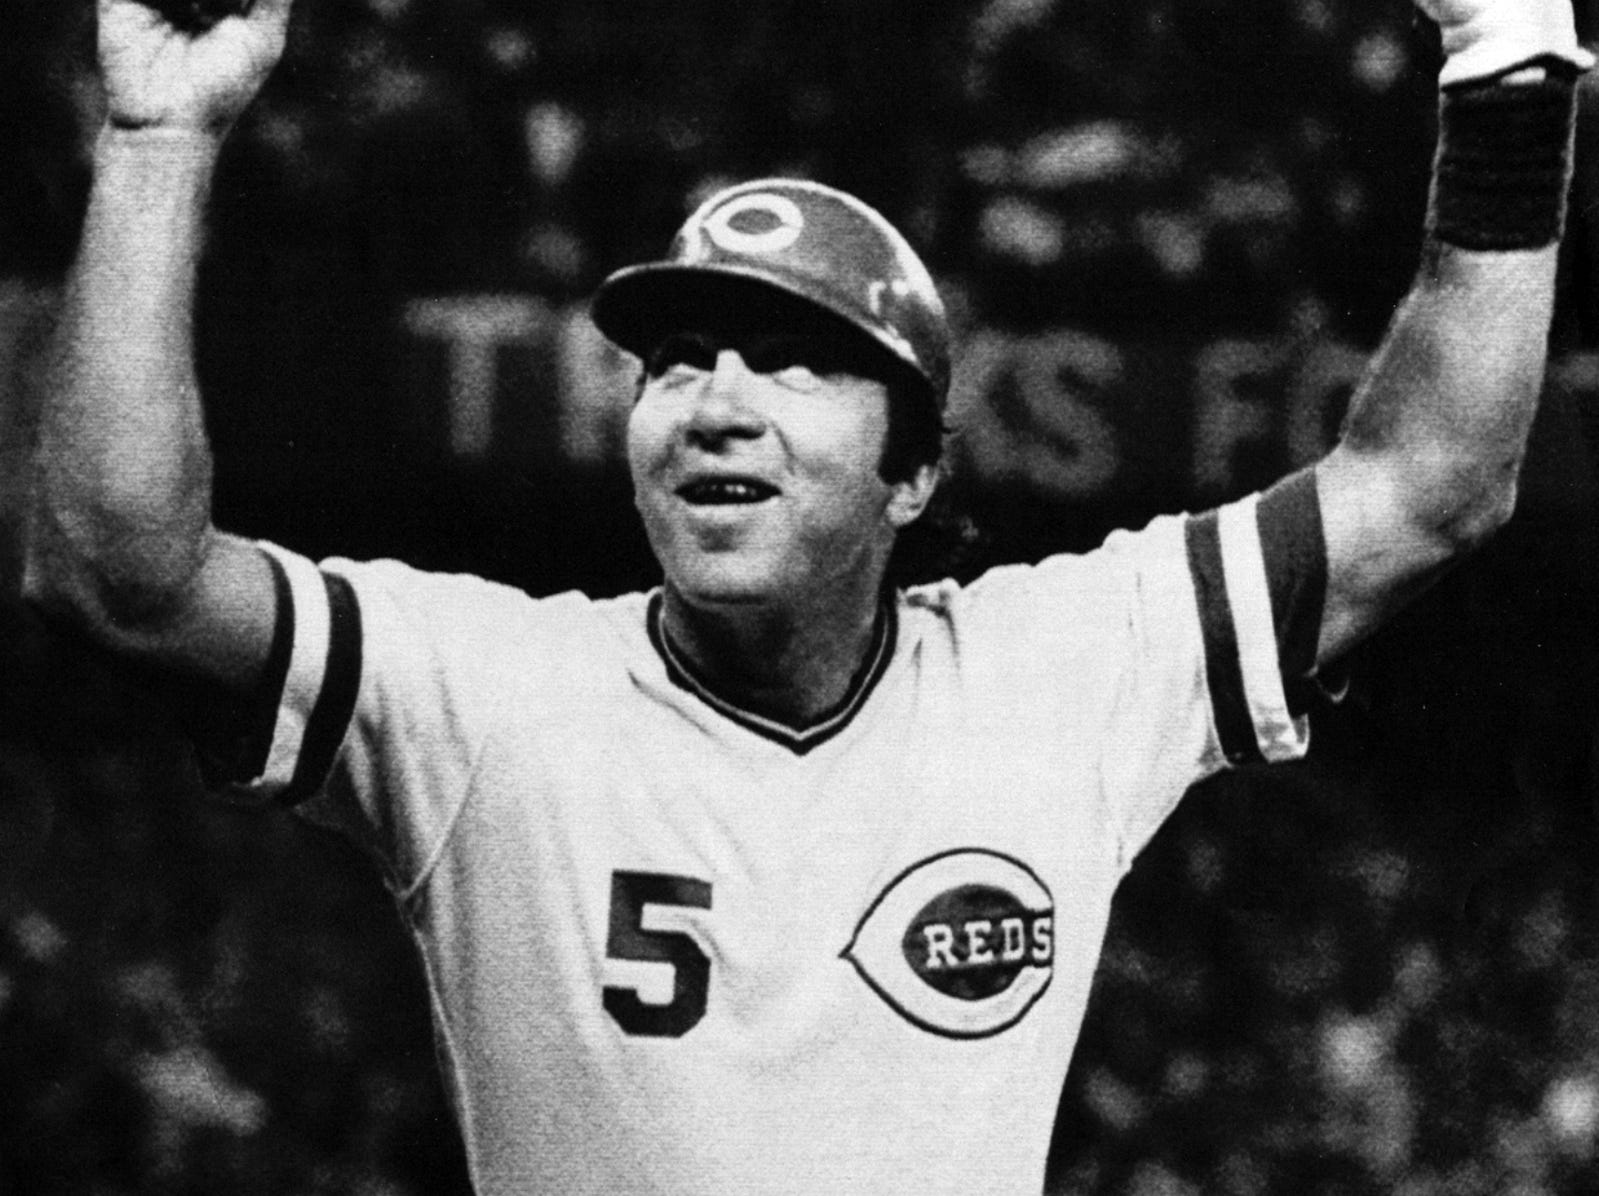 """SEPTEMBER 19, 1983: Cincinnati Reds catcher Johnny Bench celebrates after hitting a homerun during their game with the Houston Astros at Riverfront Stadium Saturday night. The game was """"Johnny Bench Night""""marking the last time he was to start as a catcher. AP Photo/Rob Burns scanned August 6, 2013"""